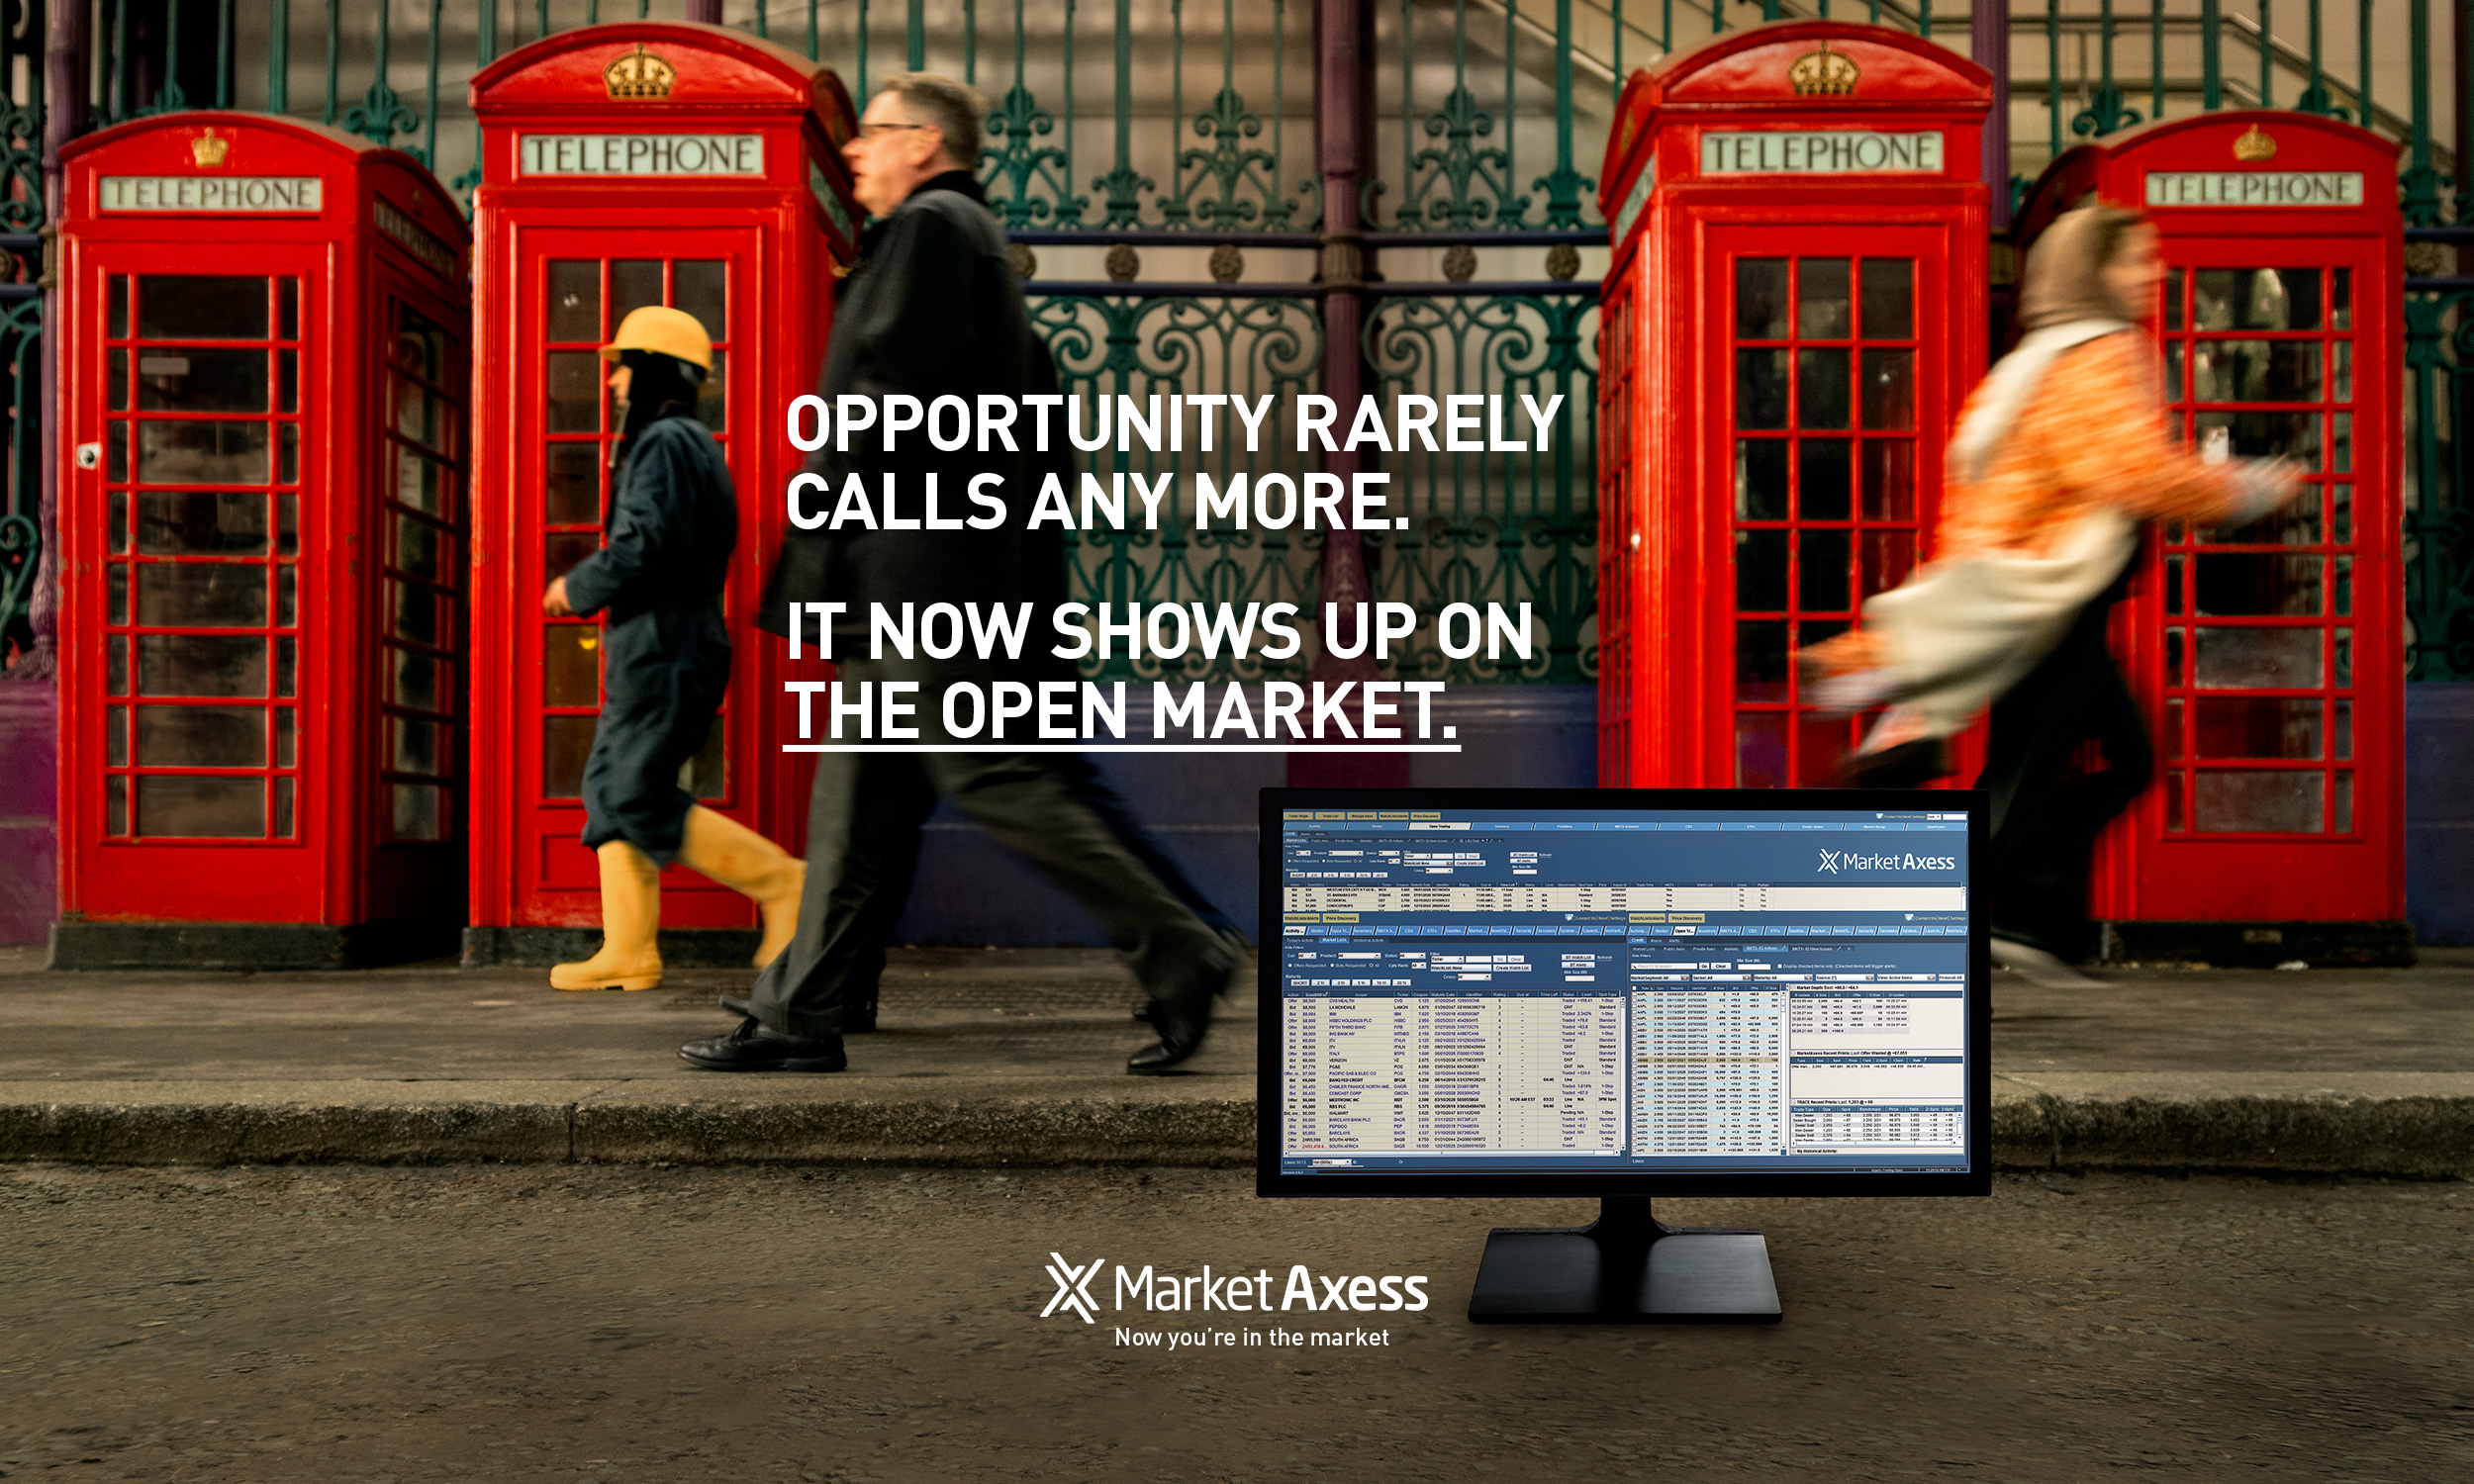 MarketAxess_Ad_AdvertisingCampaign_DarlingAgency.jpg